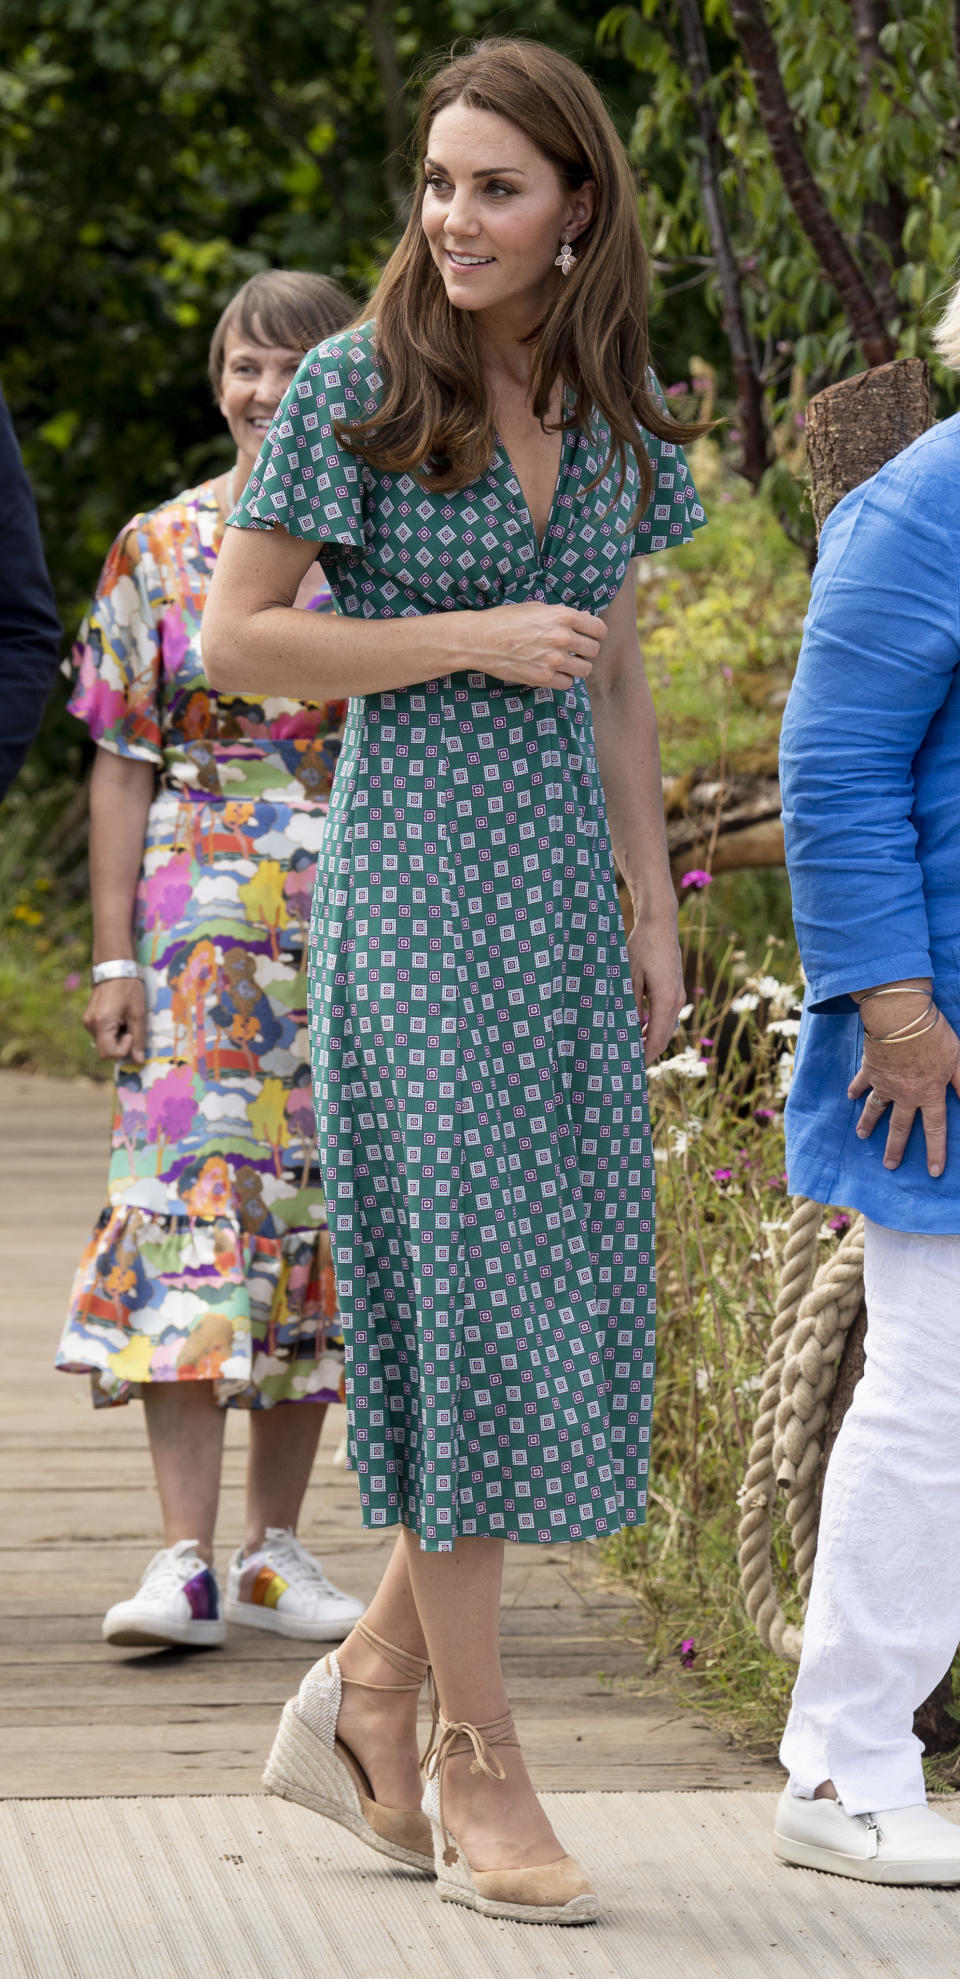 LONDON, ENGLAND - JULY 01: Catherine, Duchess of Cambridge visits The RHS Back to Nature Garden she designed at the 2019 RHS Hampton Court Palace Flower Show at Hampton Court Palace on July 1, 2019 in London, England. (Photo by Mark Cuthbert/UK Press via Getty Images)